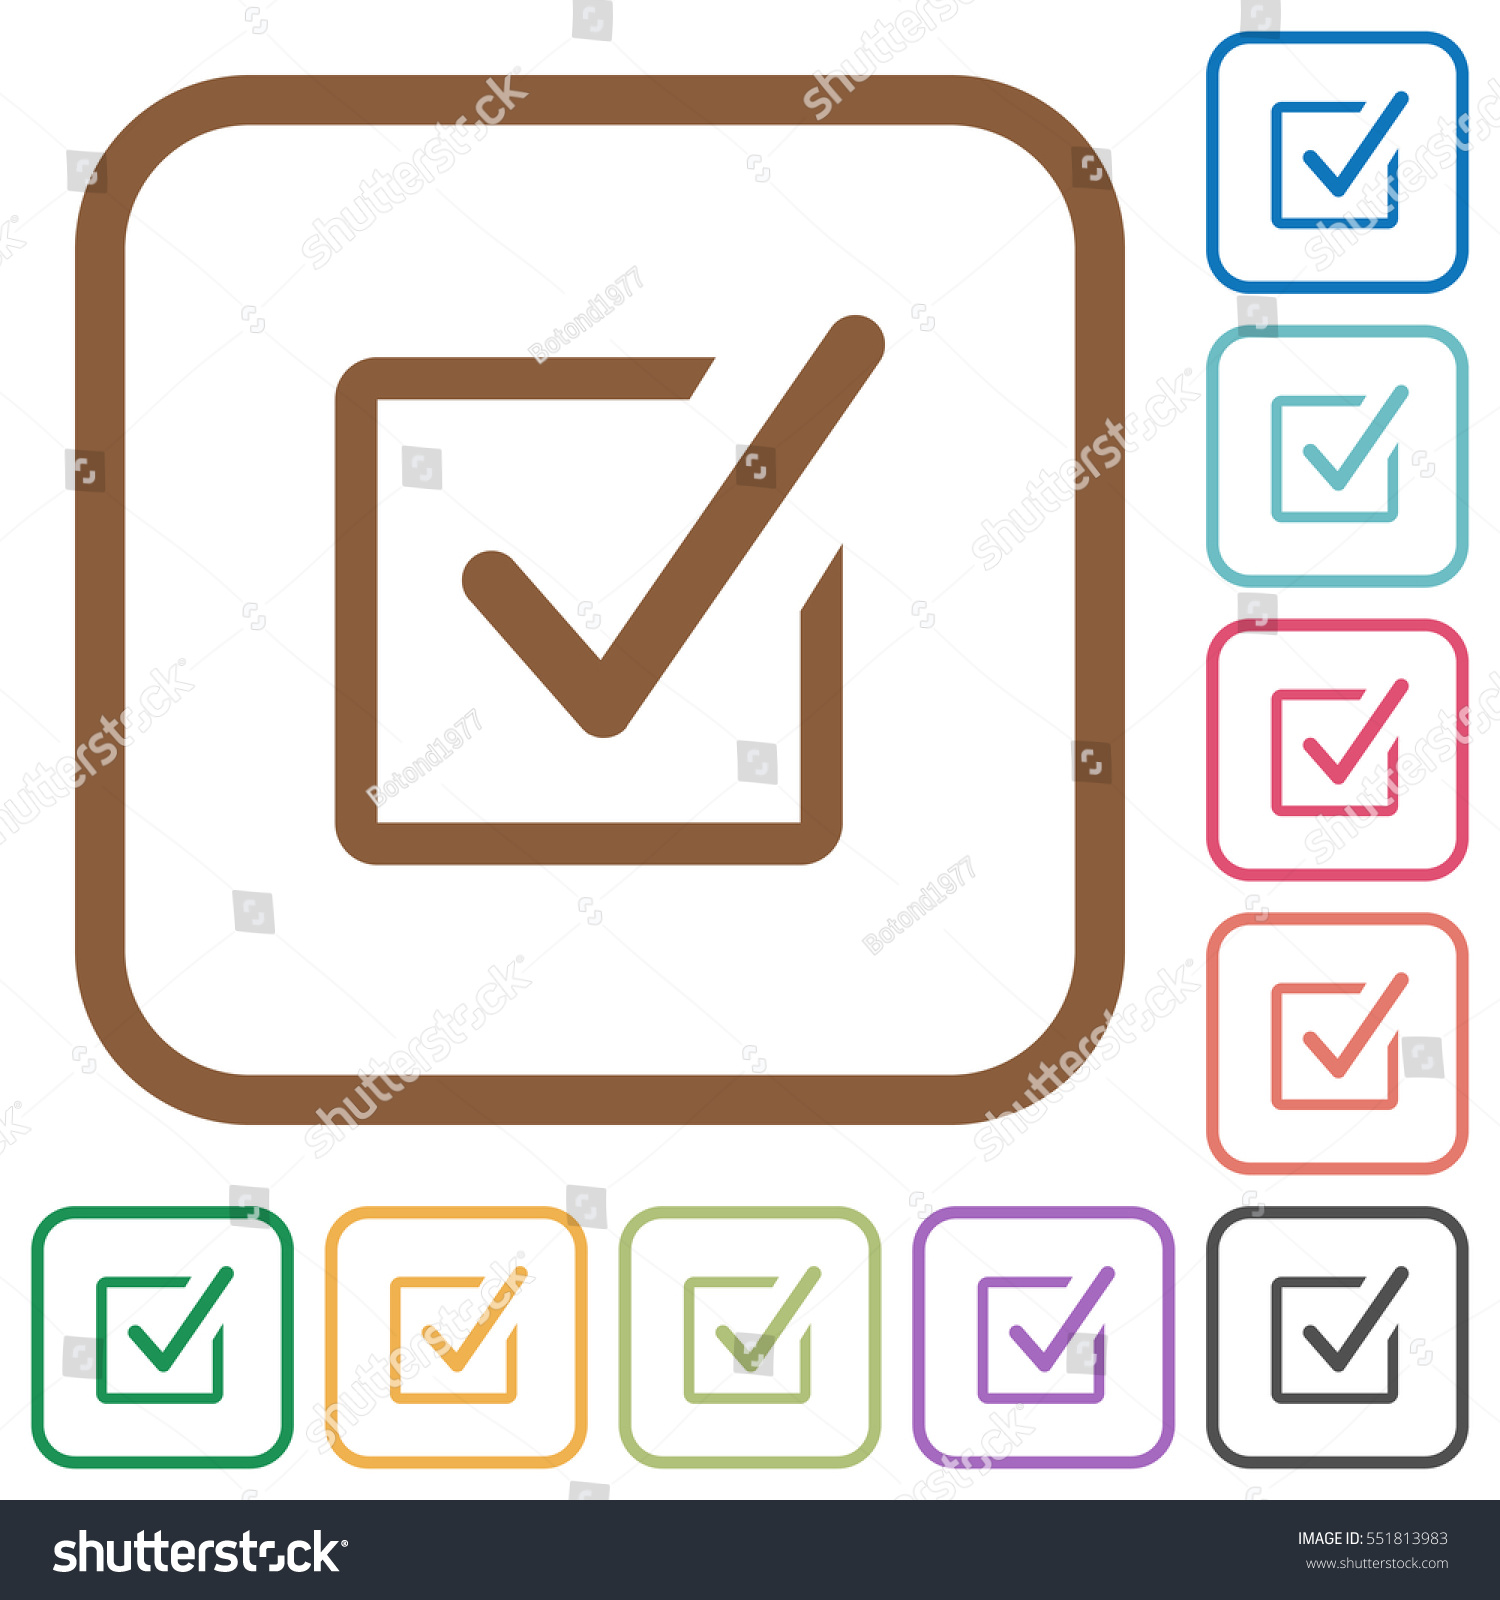 Checked box simple icons color rounded stock vector 551813983 checked box simple icons in color rounded square frames on white background biocorpaavc Gallery